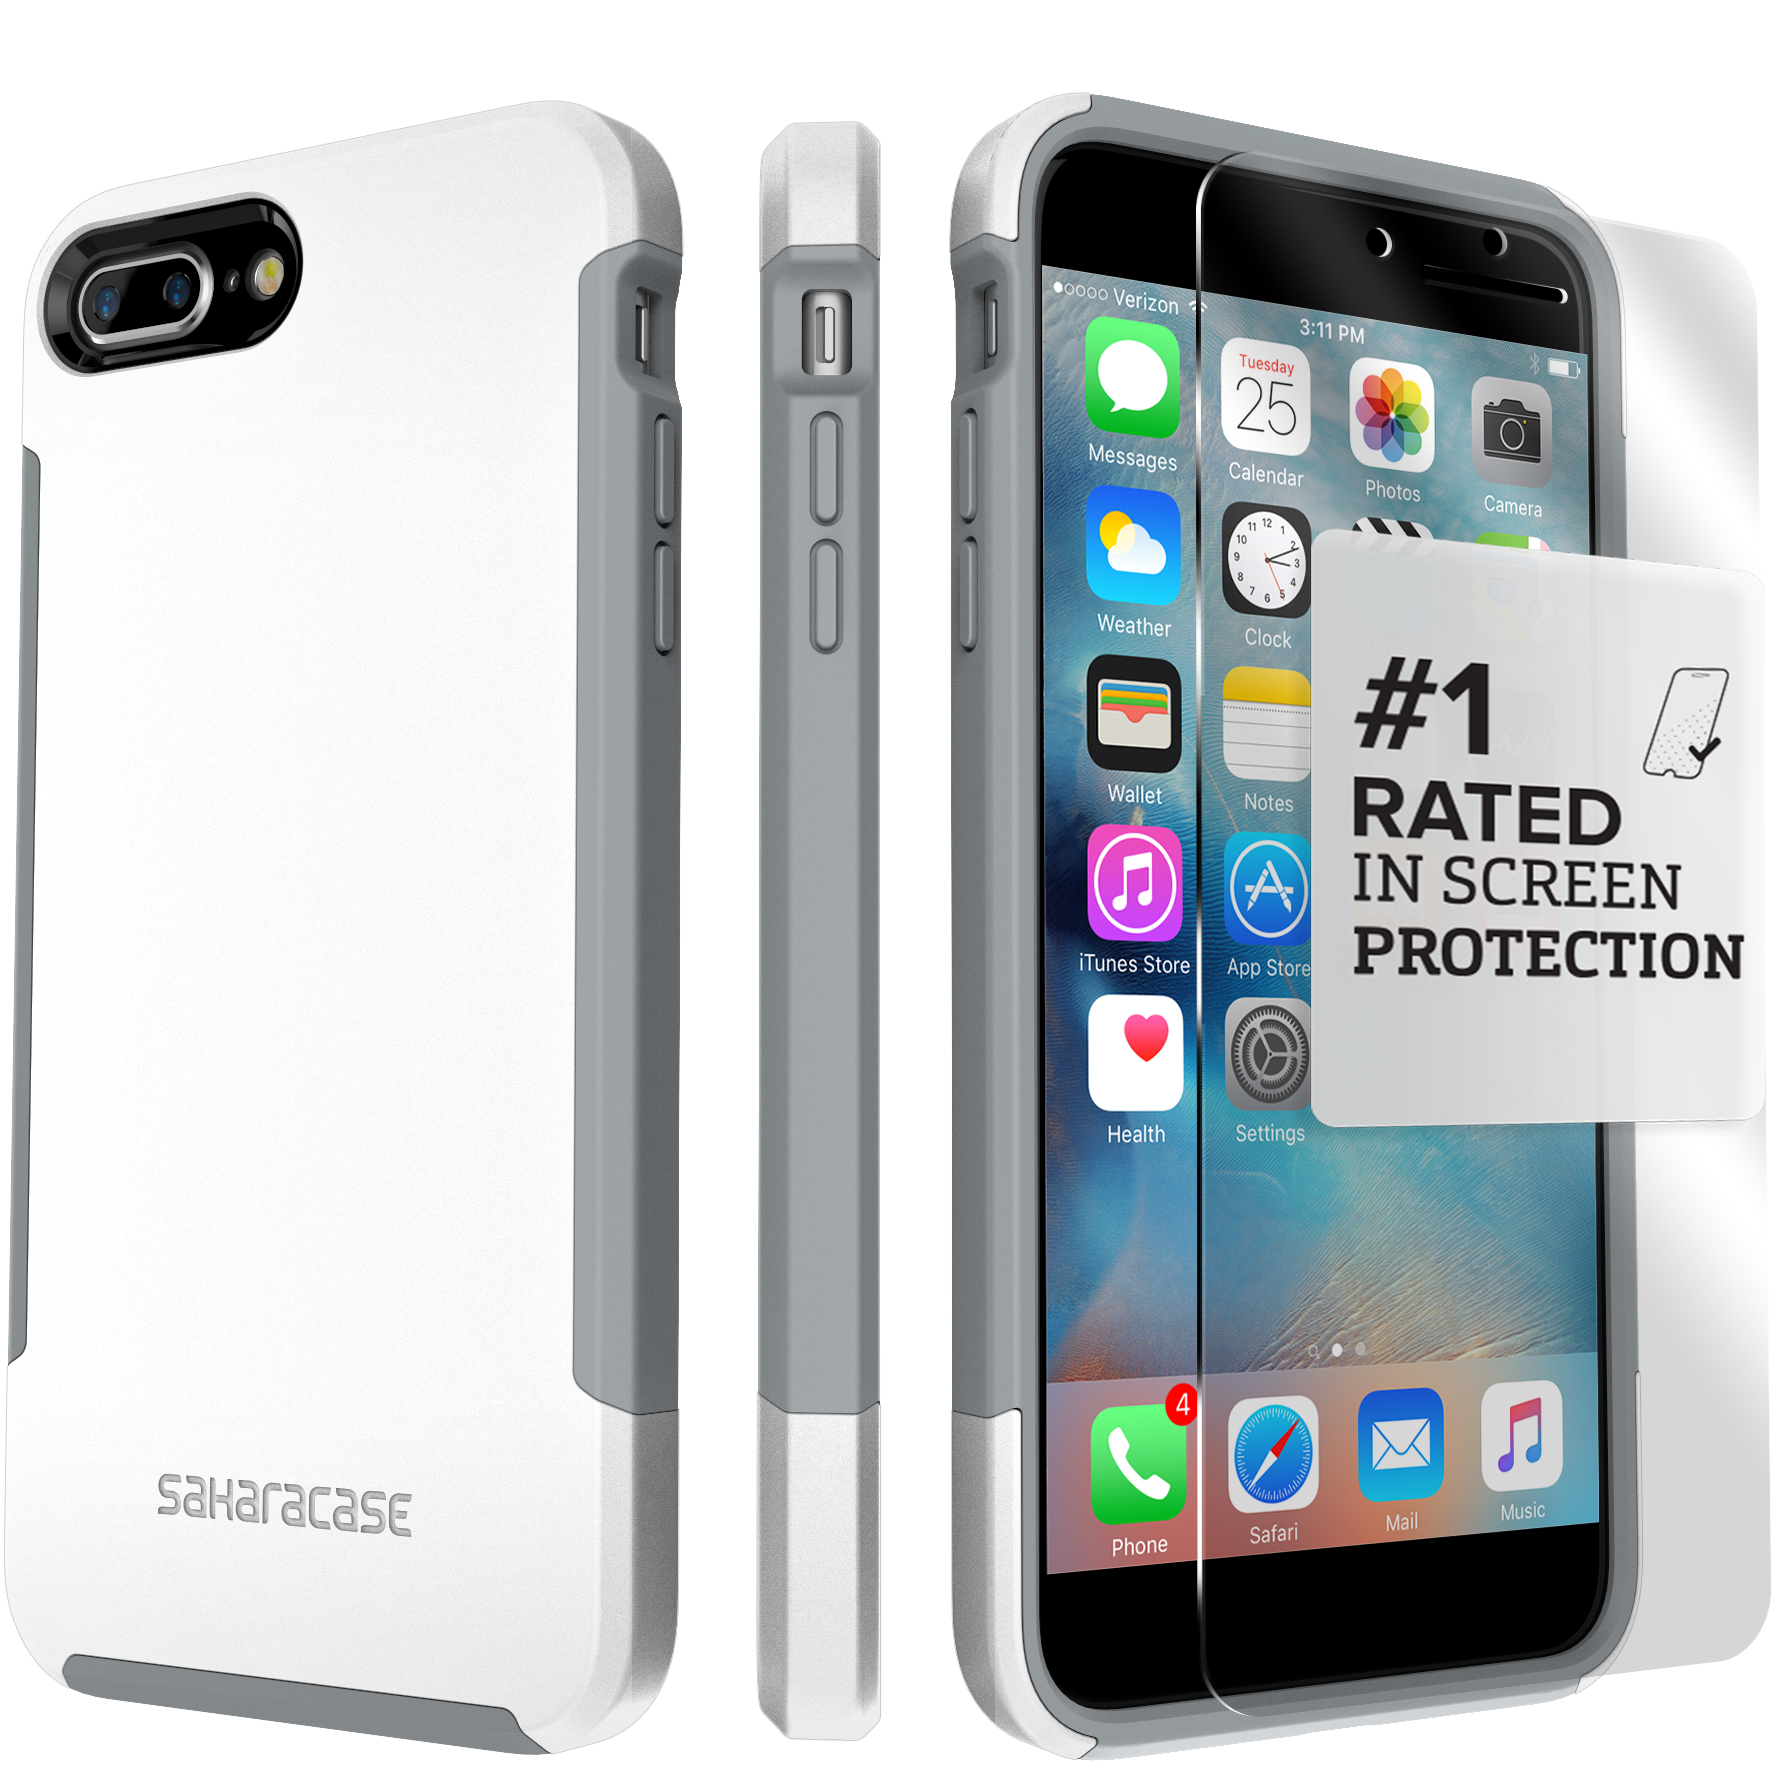 SaharaCase iPhone 8 and 7 Inspire Case, Protective Kit Bundle with ZeroDamage Tempered Glass Screen Protector - Black